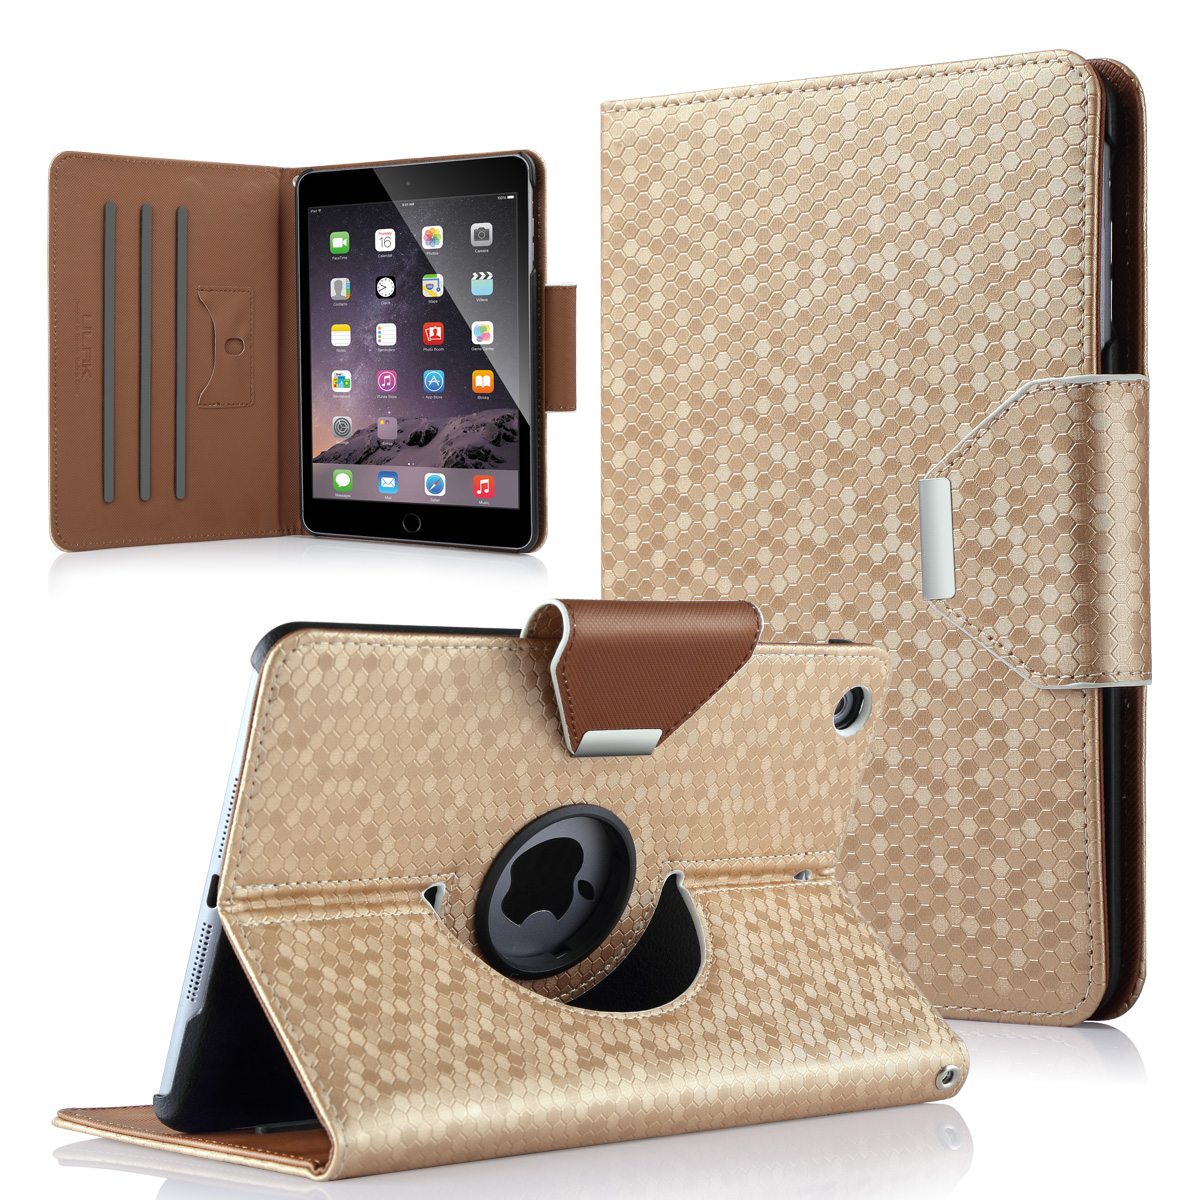 iPad mini 3 / iPad mini 2 / iPad mini Rotating Case - ULAK Multi-Angle Stand Smart Cover with Auto Sleep/Wake for Apple iPad mini 1/2/3 (Gold)